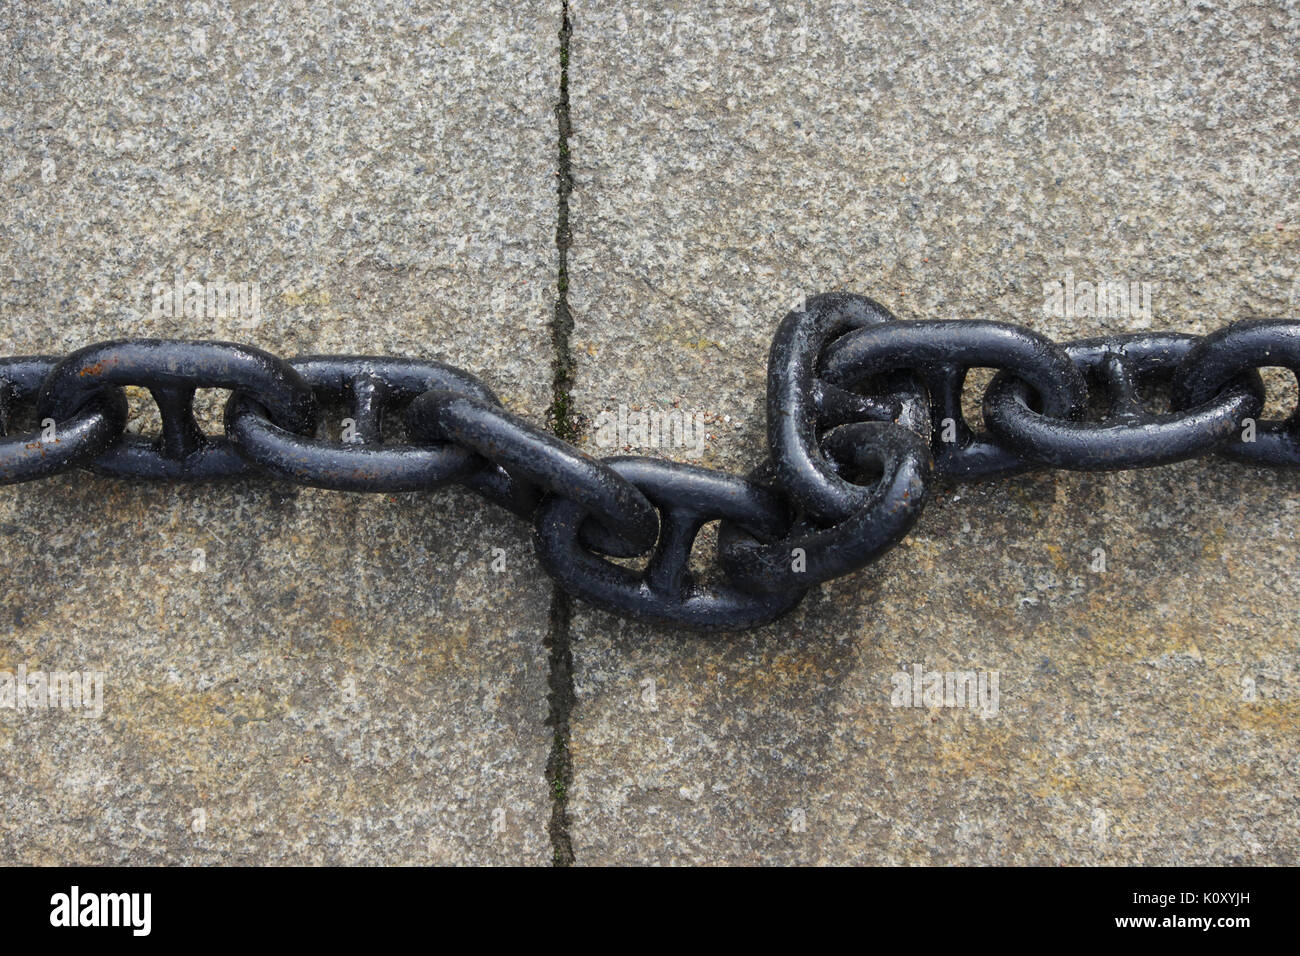 A black metal chain with large links lies on concrete slabs on the ground. - Stock Image